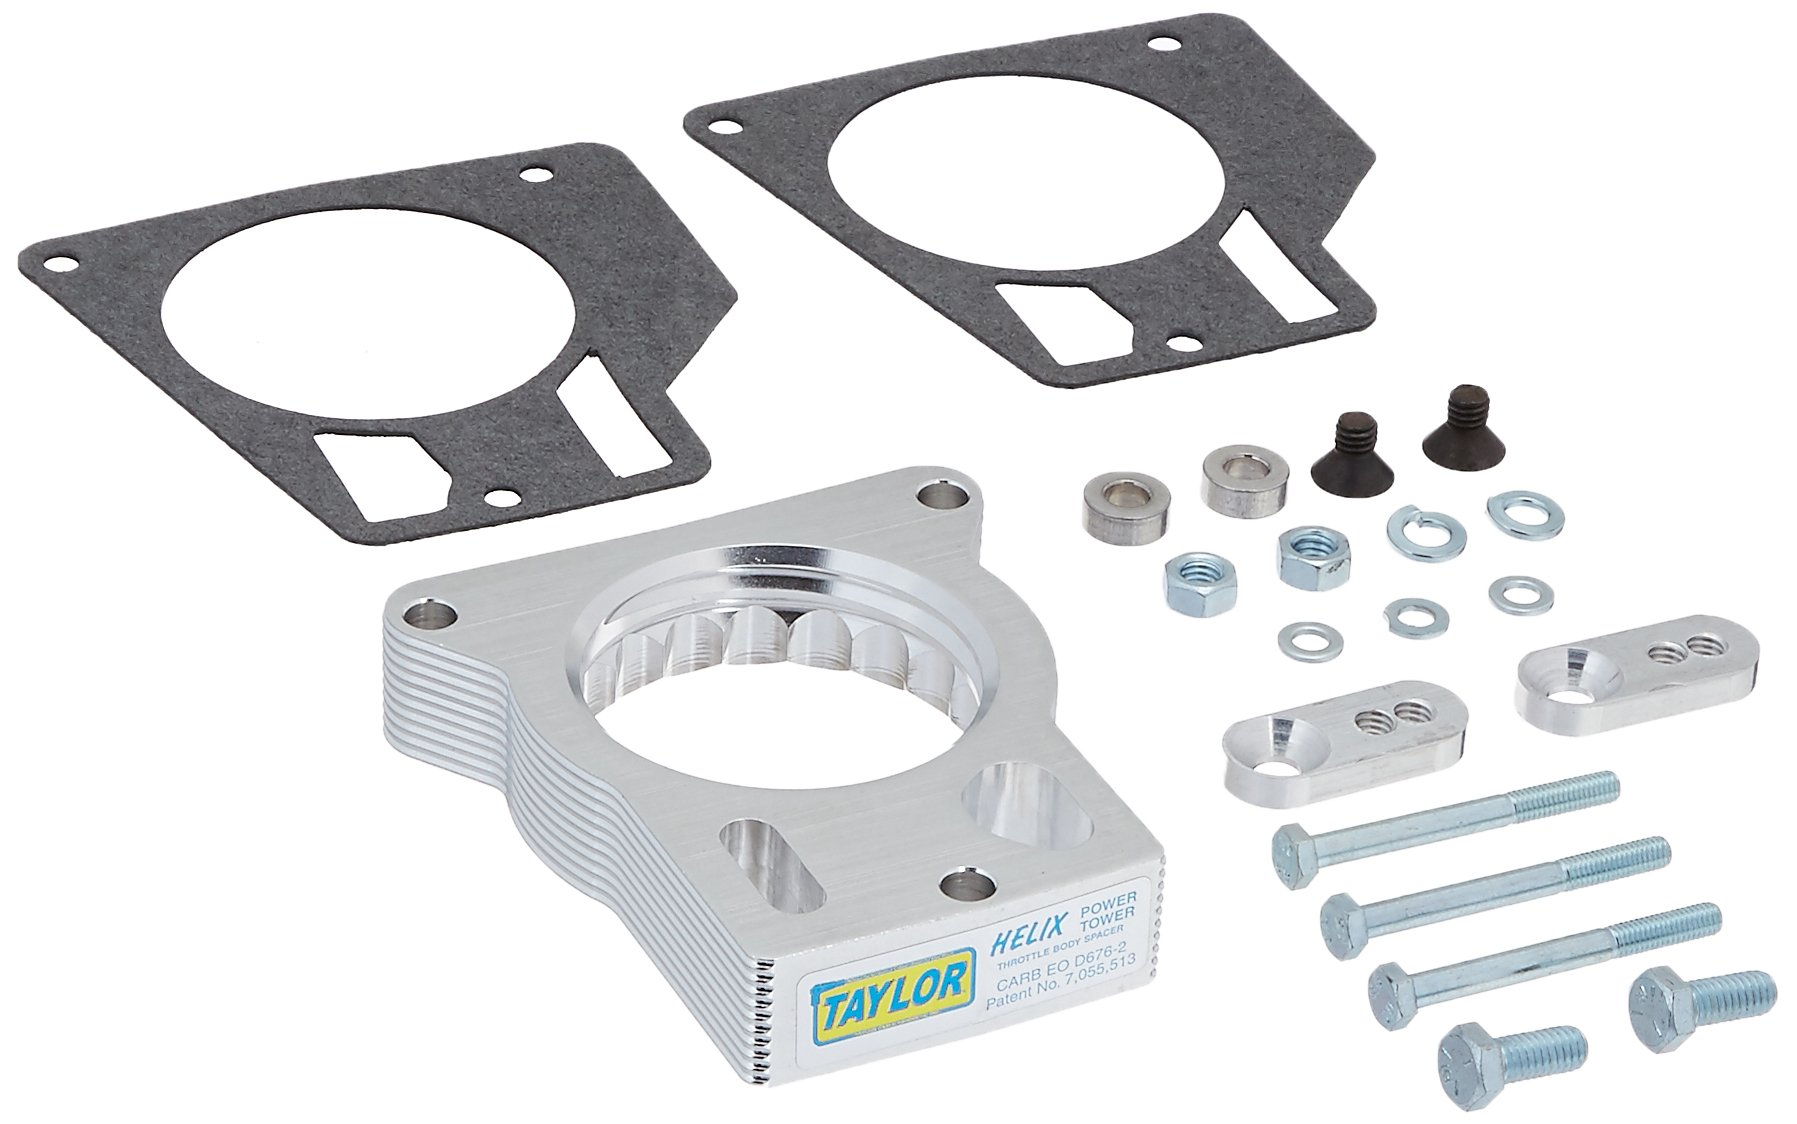 Taylor Cable 74915 Helix Power Tower Plus Throttle Body Spacer by Taylor Cable